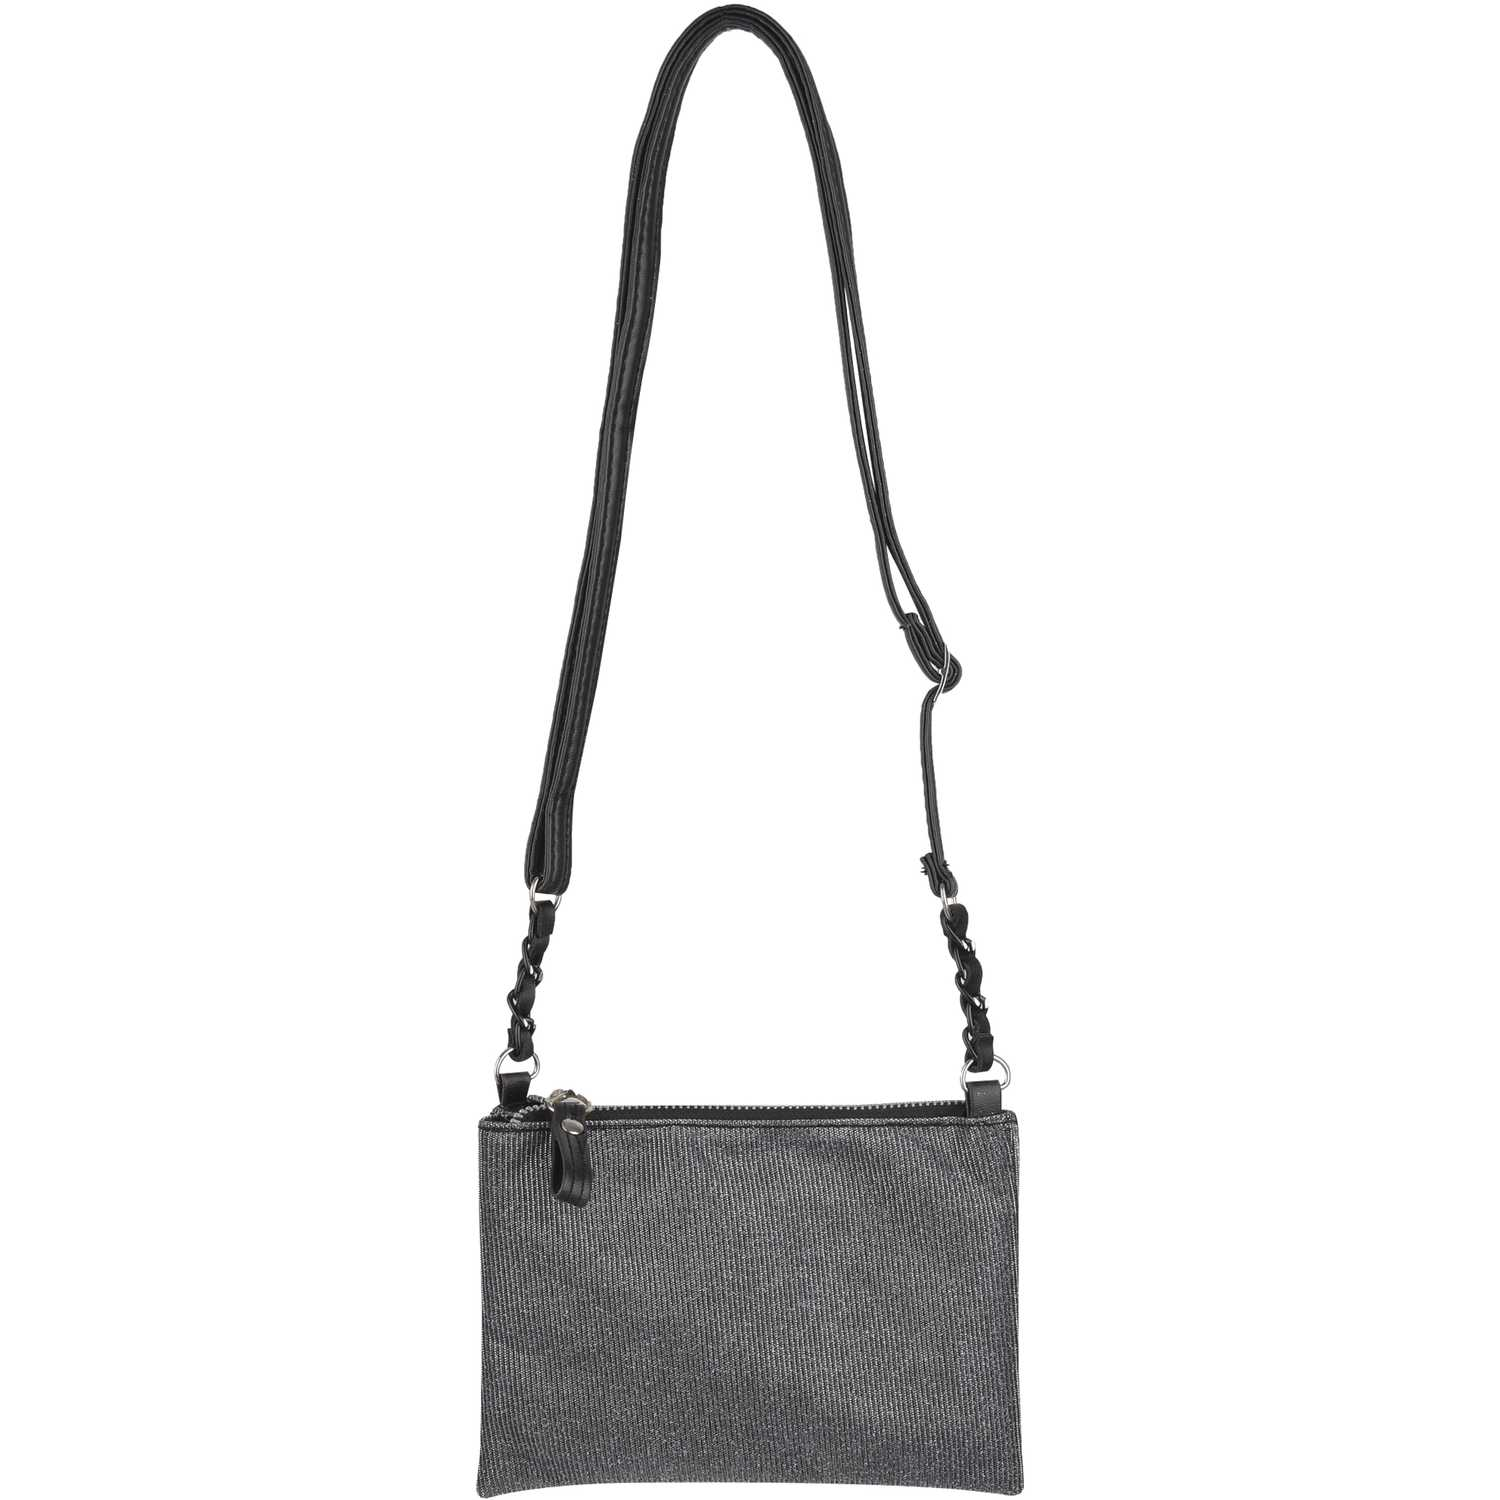 Platanitos newstar Pewter Carteras de Mano